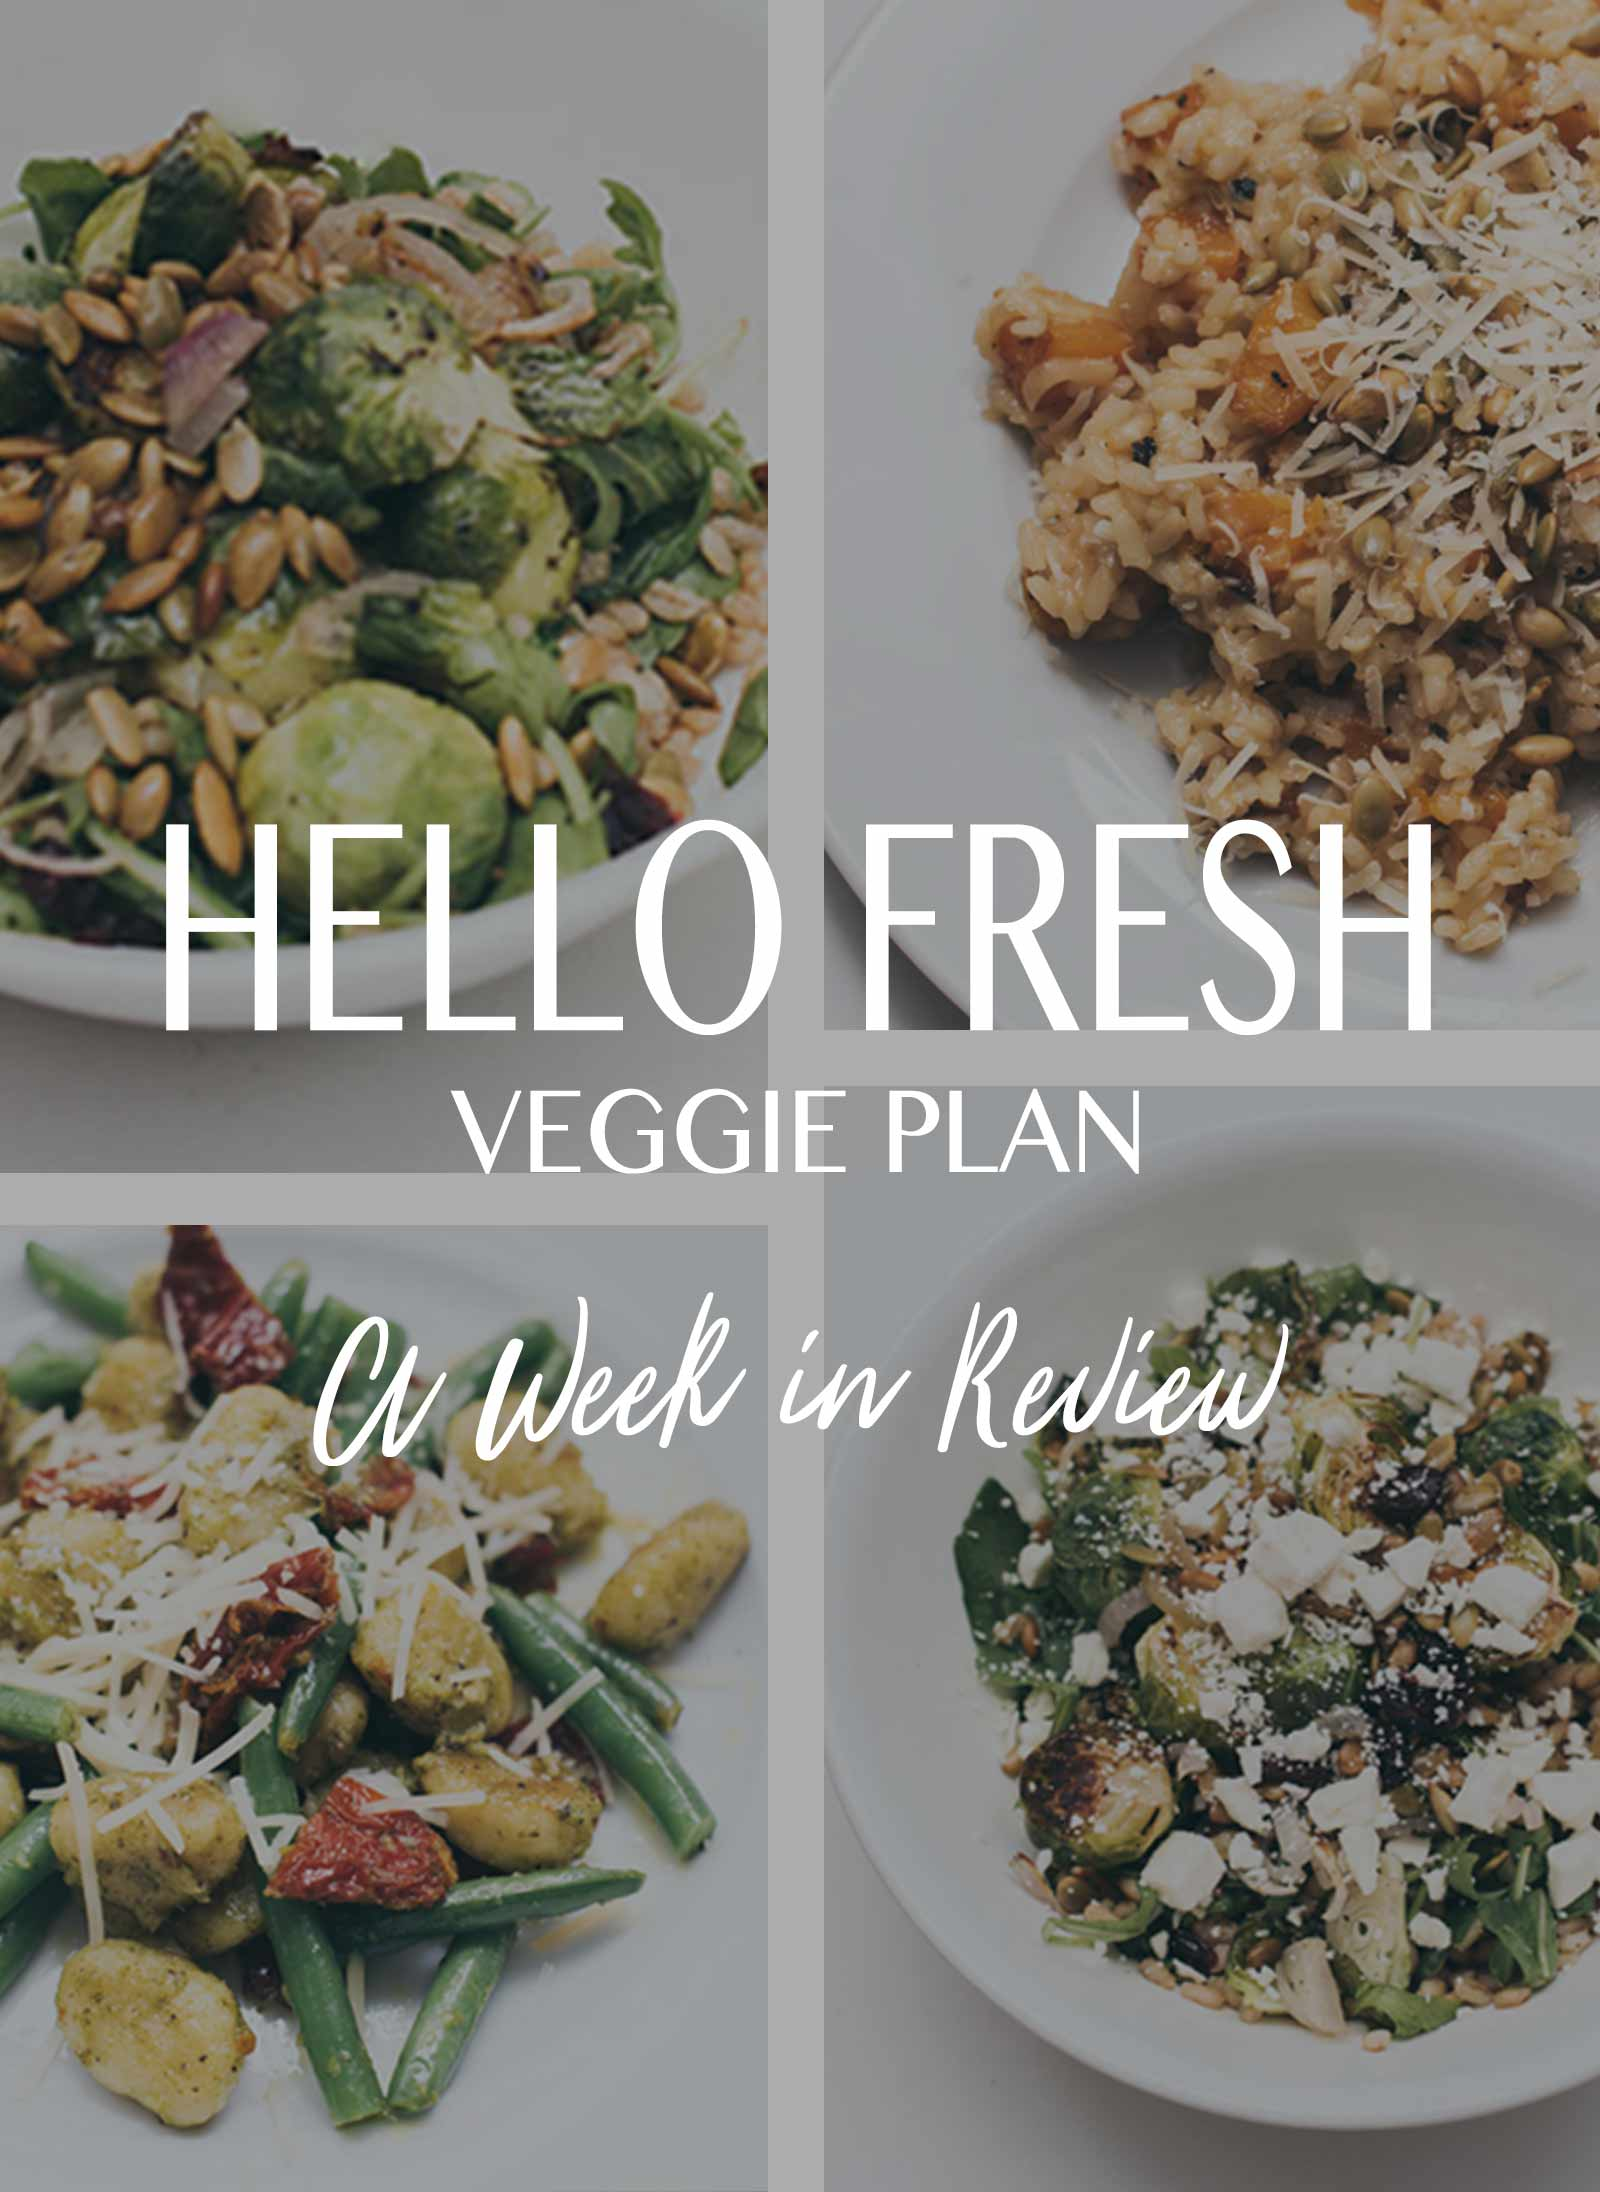 Hellofresh Meal Kit Delivery Service Retail Price